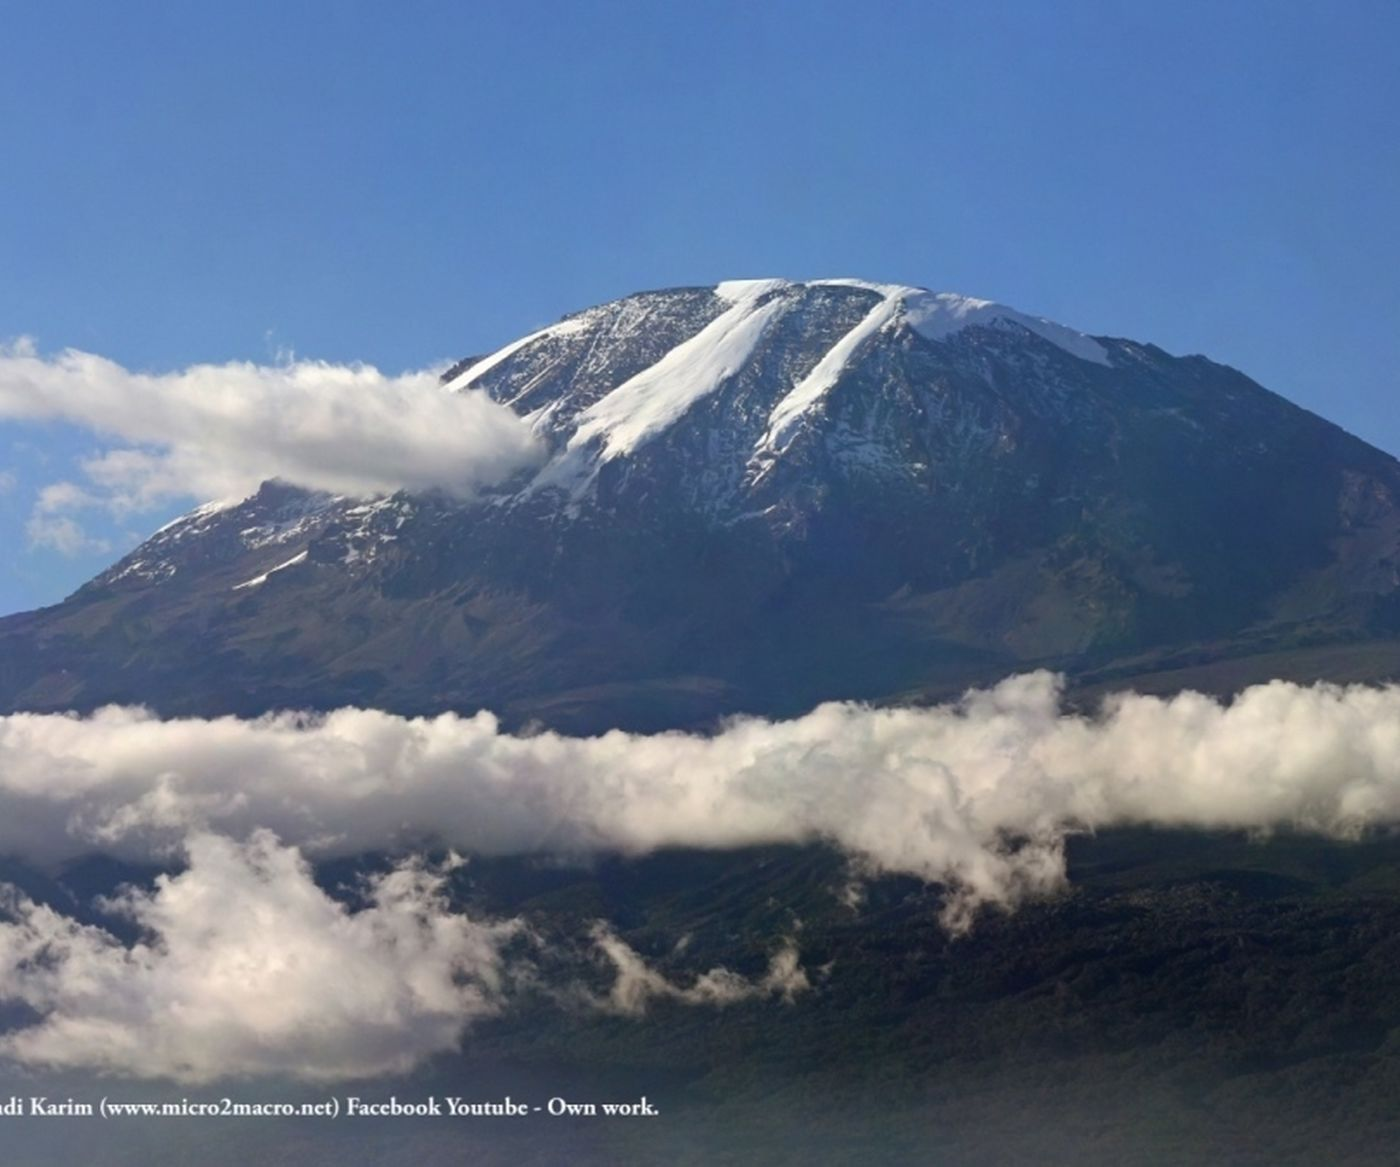 Mount Kilimanjaro WIKIMEDIA COMMONS